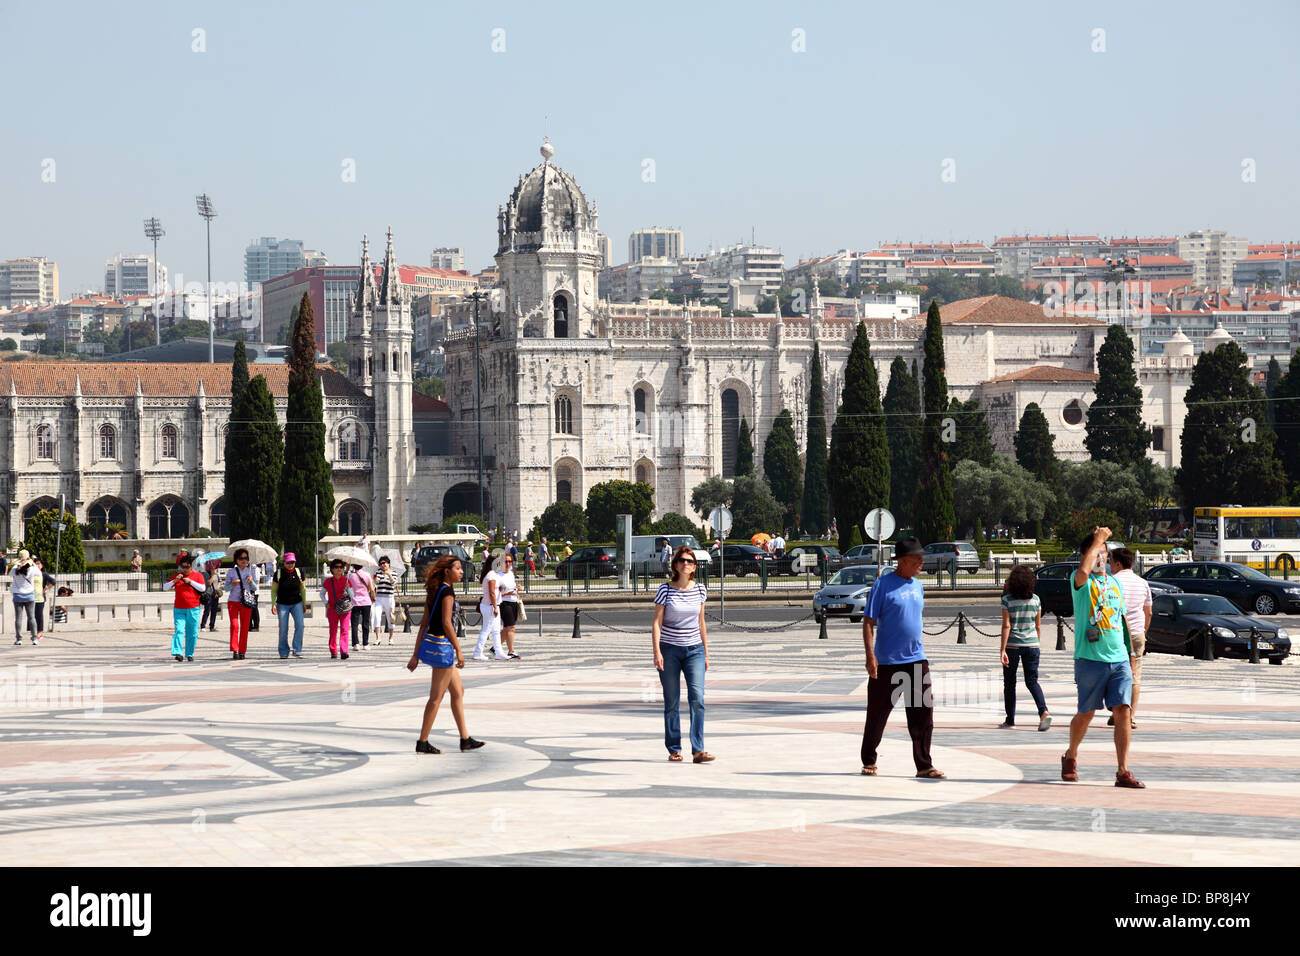 Monastery of the Hieronymites and Tower of Belem in Lisbon, Portugal - Stock Image